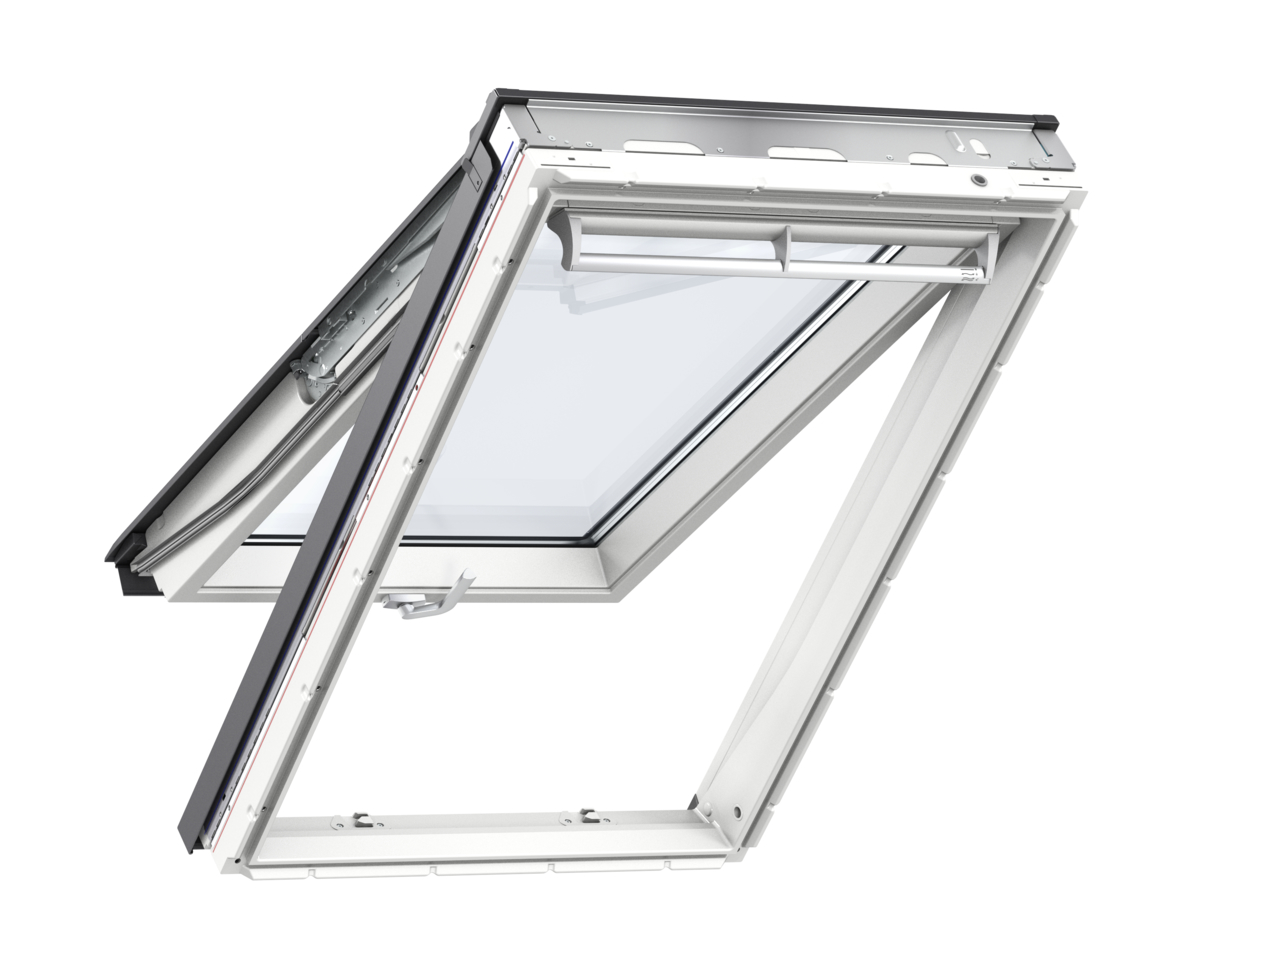 Velux GPU CK04 550 x 980mm Top Hung 34Pane Roof Window - White Polyurethane